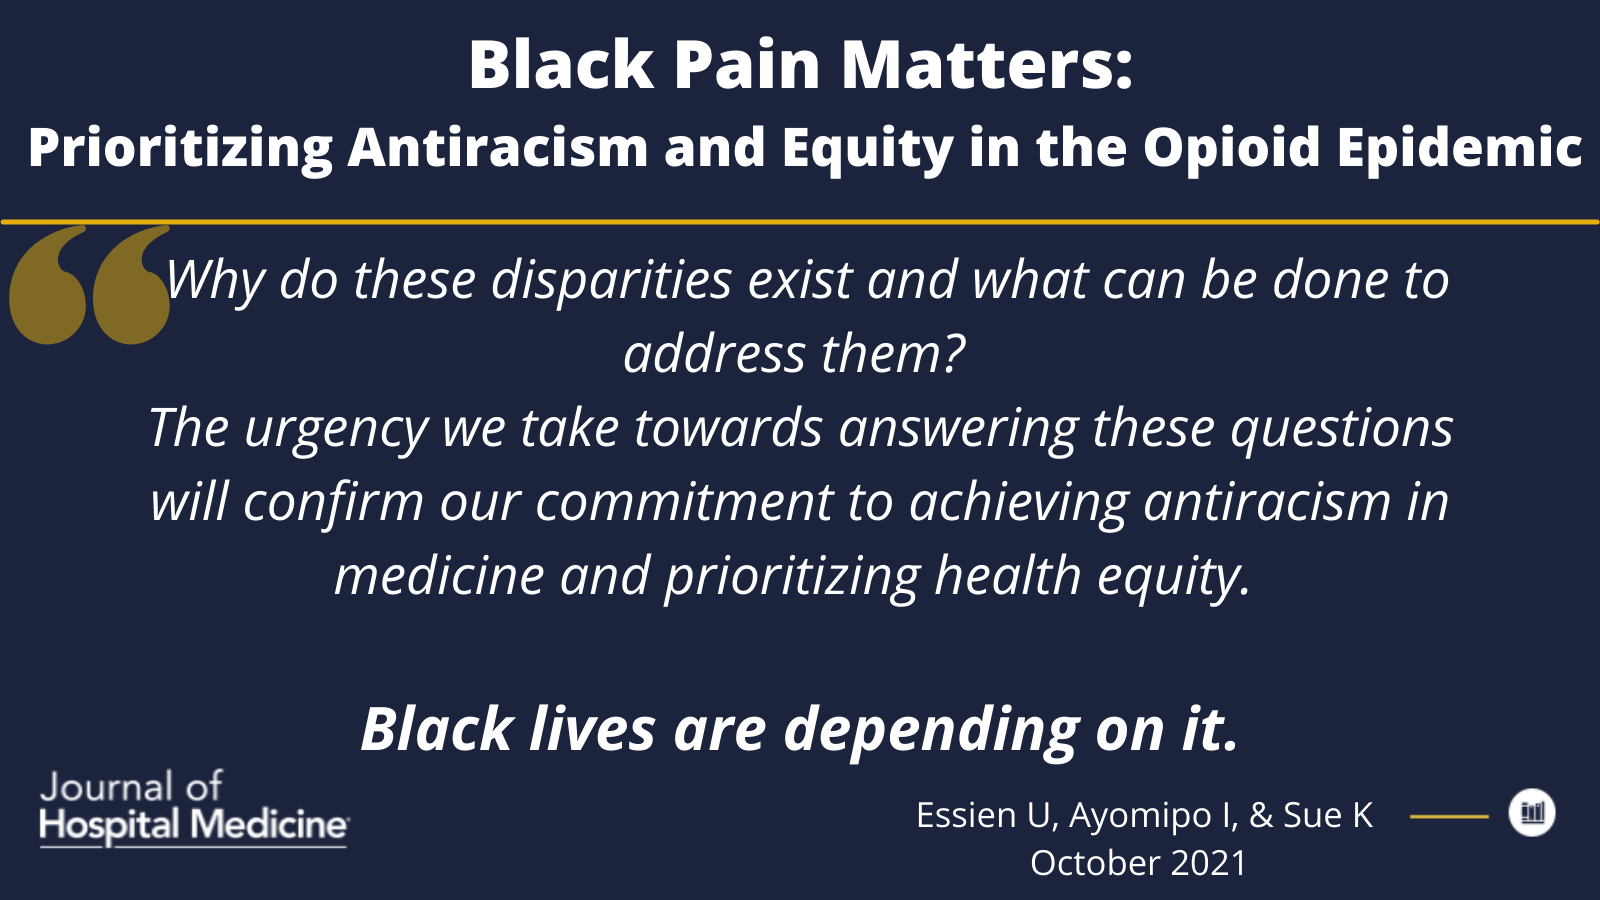 Black Pain Matters: Prioritizing Antiracism and Equity in the Opioid Epidemic